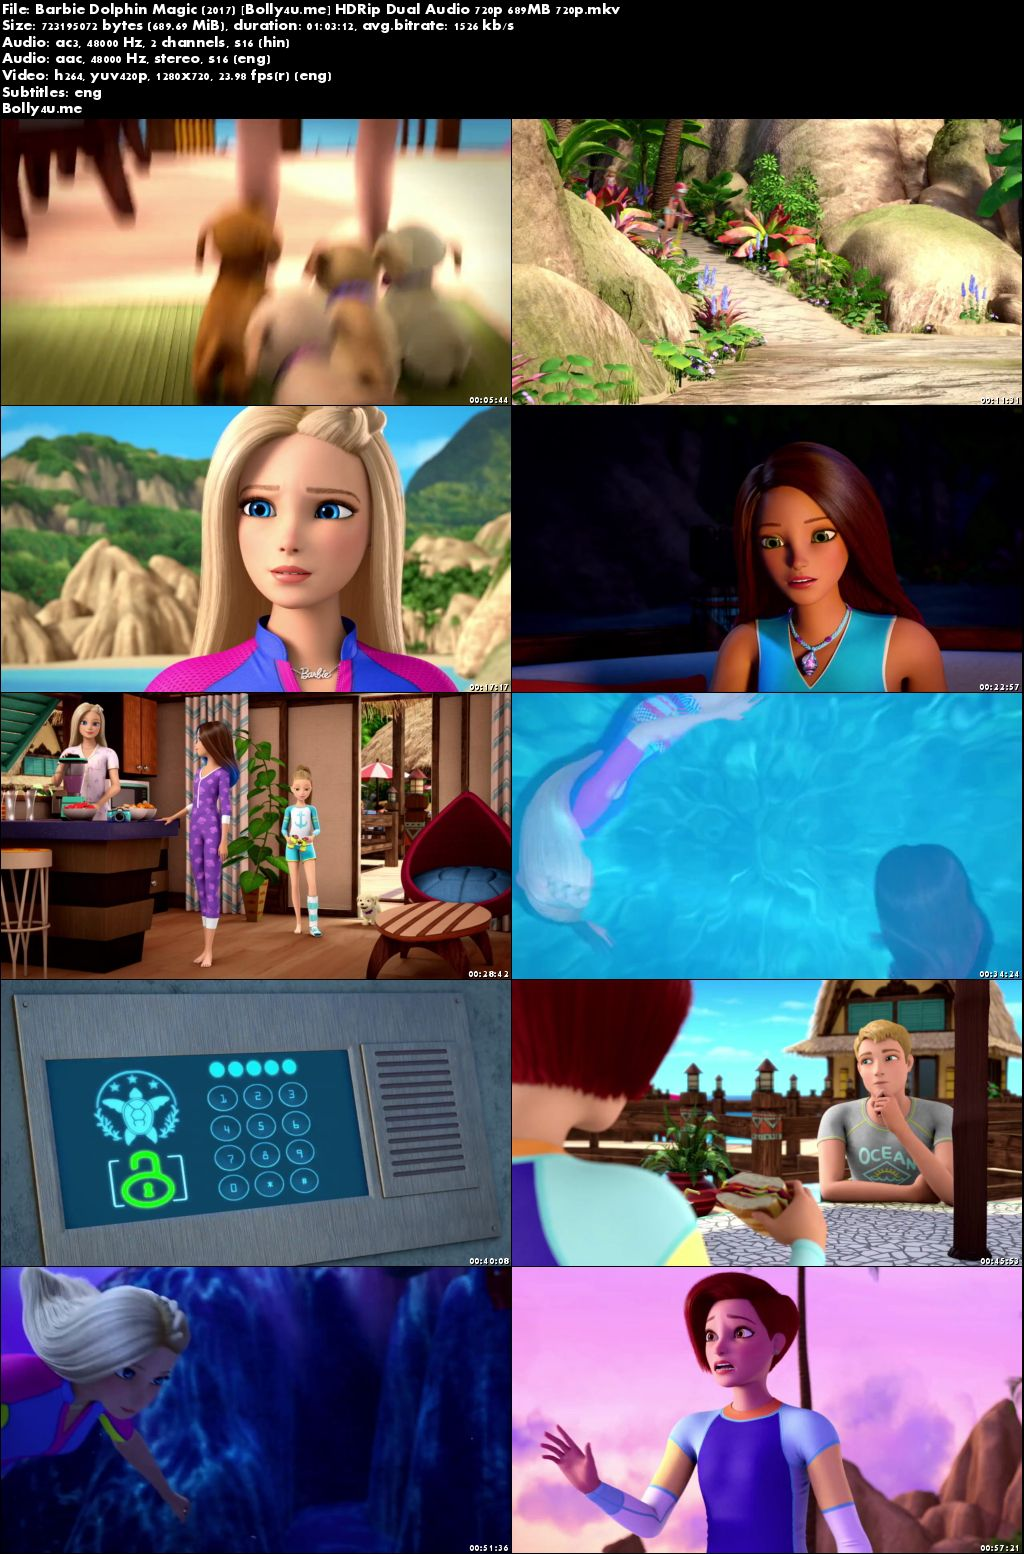 Barbie Dolphin Magic 2017 HDRip 700MB Hindi Dual Audio 720p Download